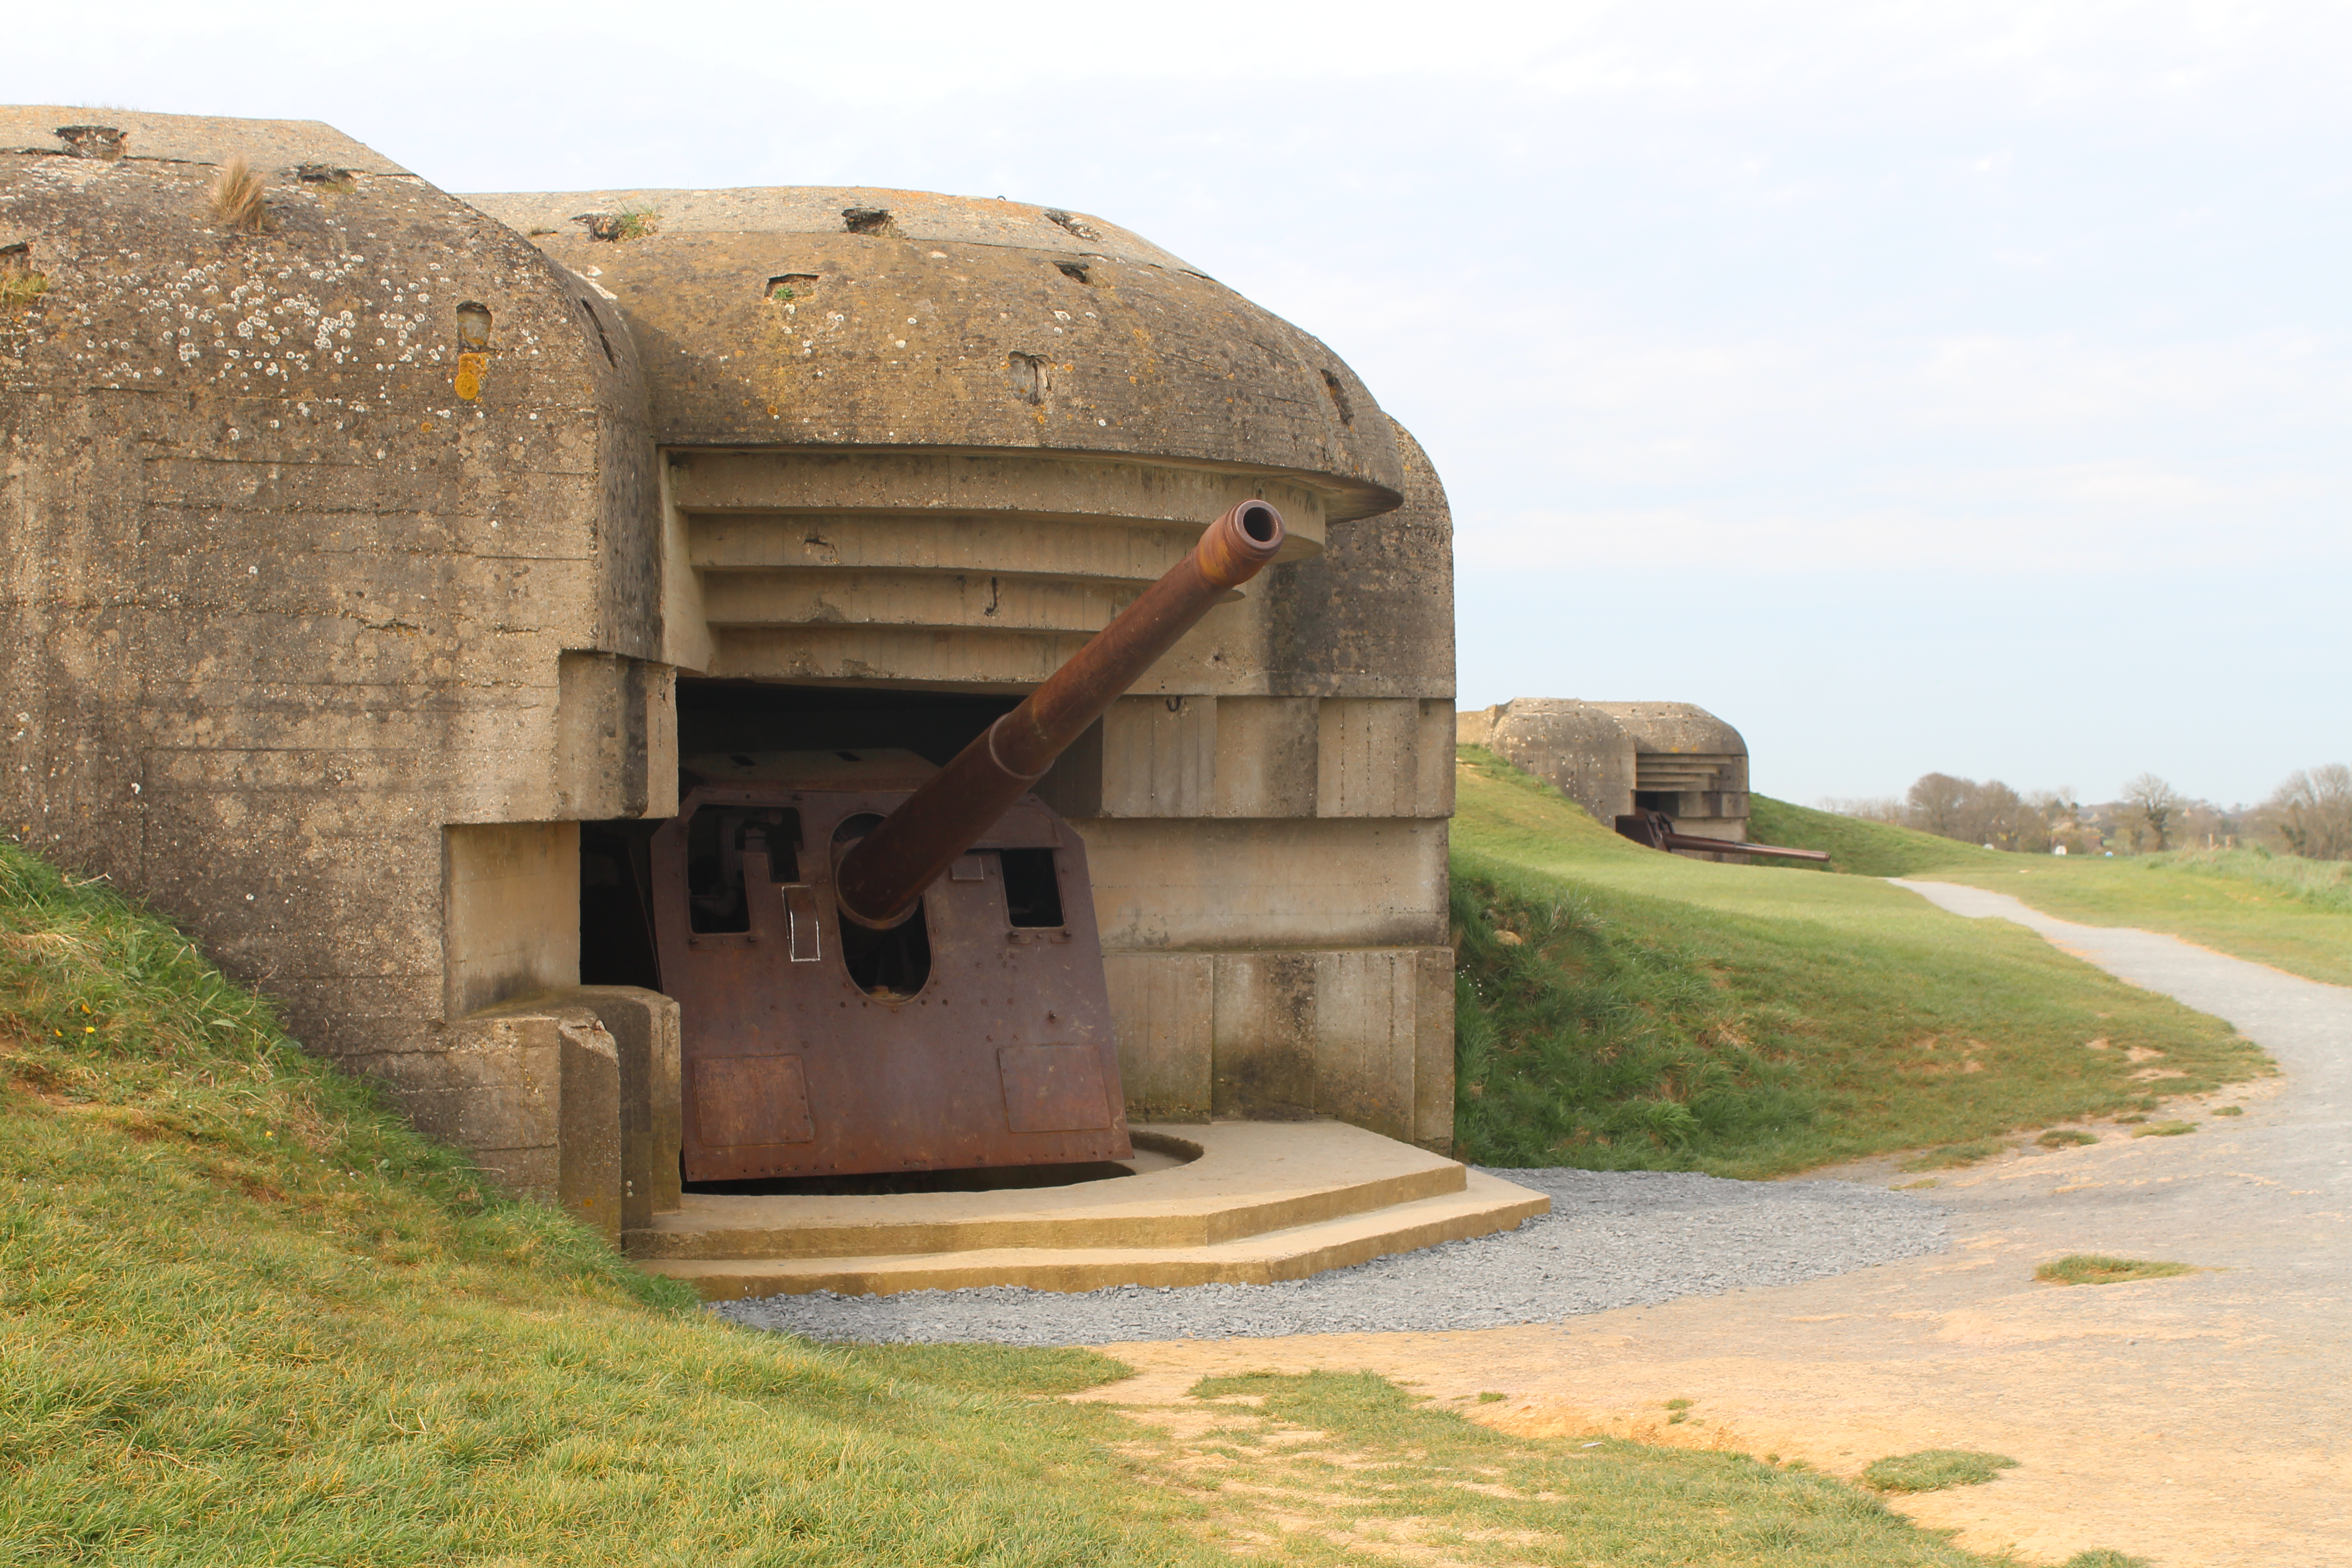 German battery at Longues Sur Mer showing a large rusty gun set in amongst concrete defences.